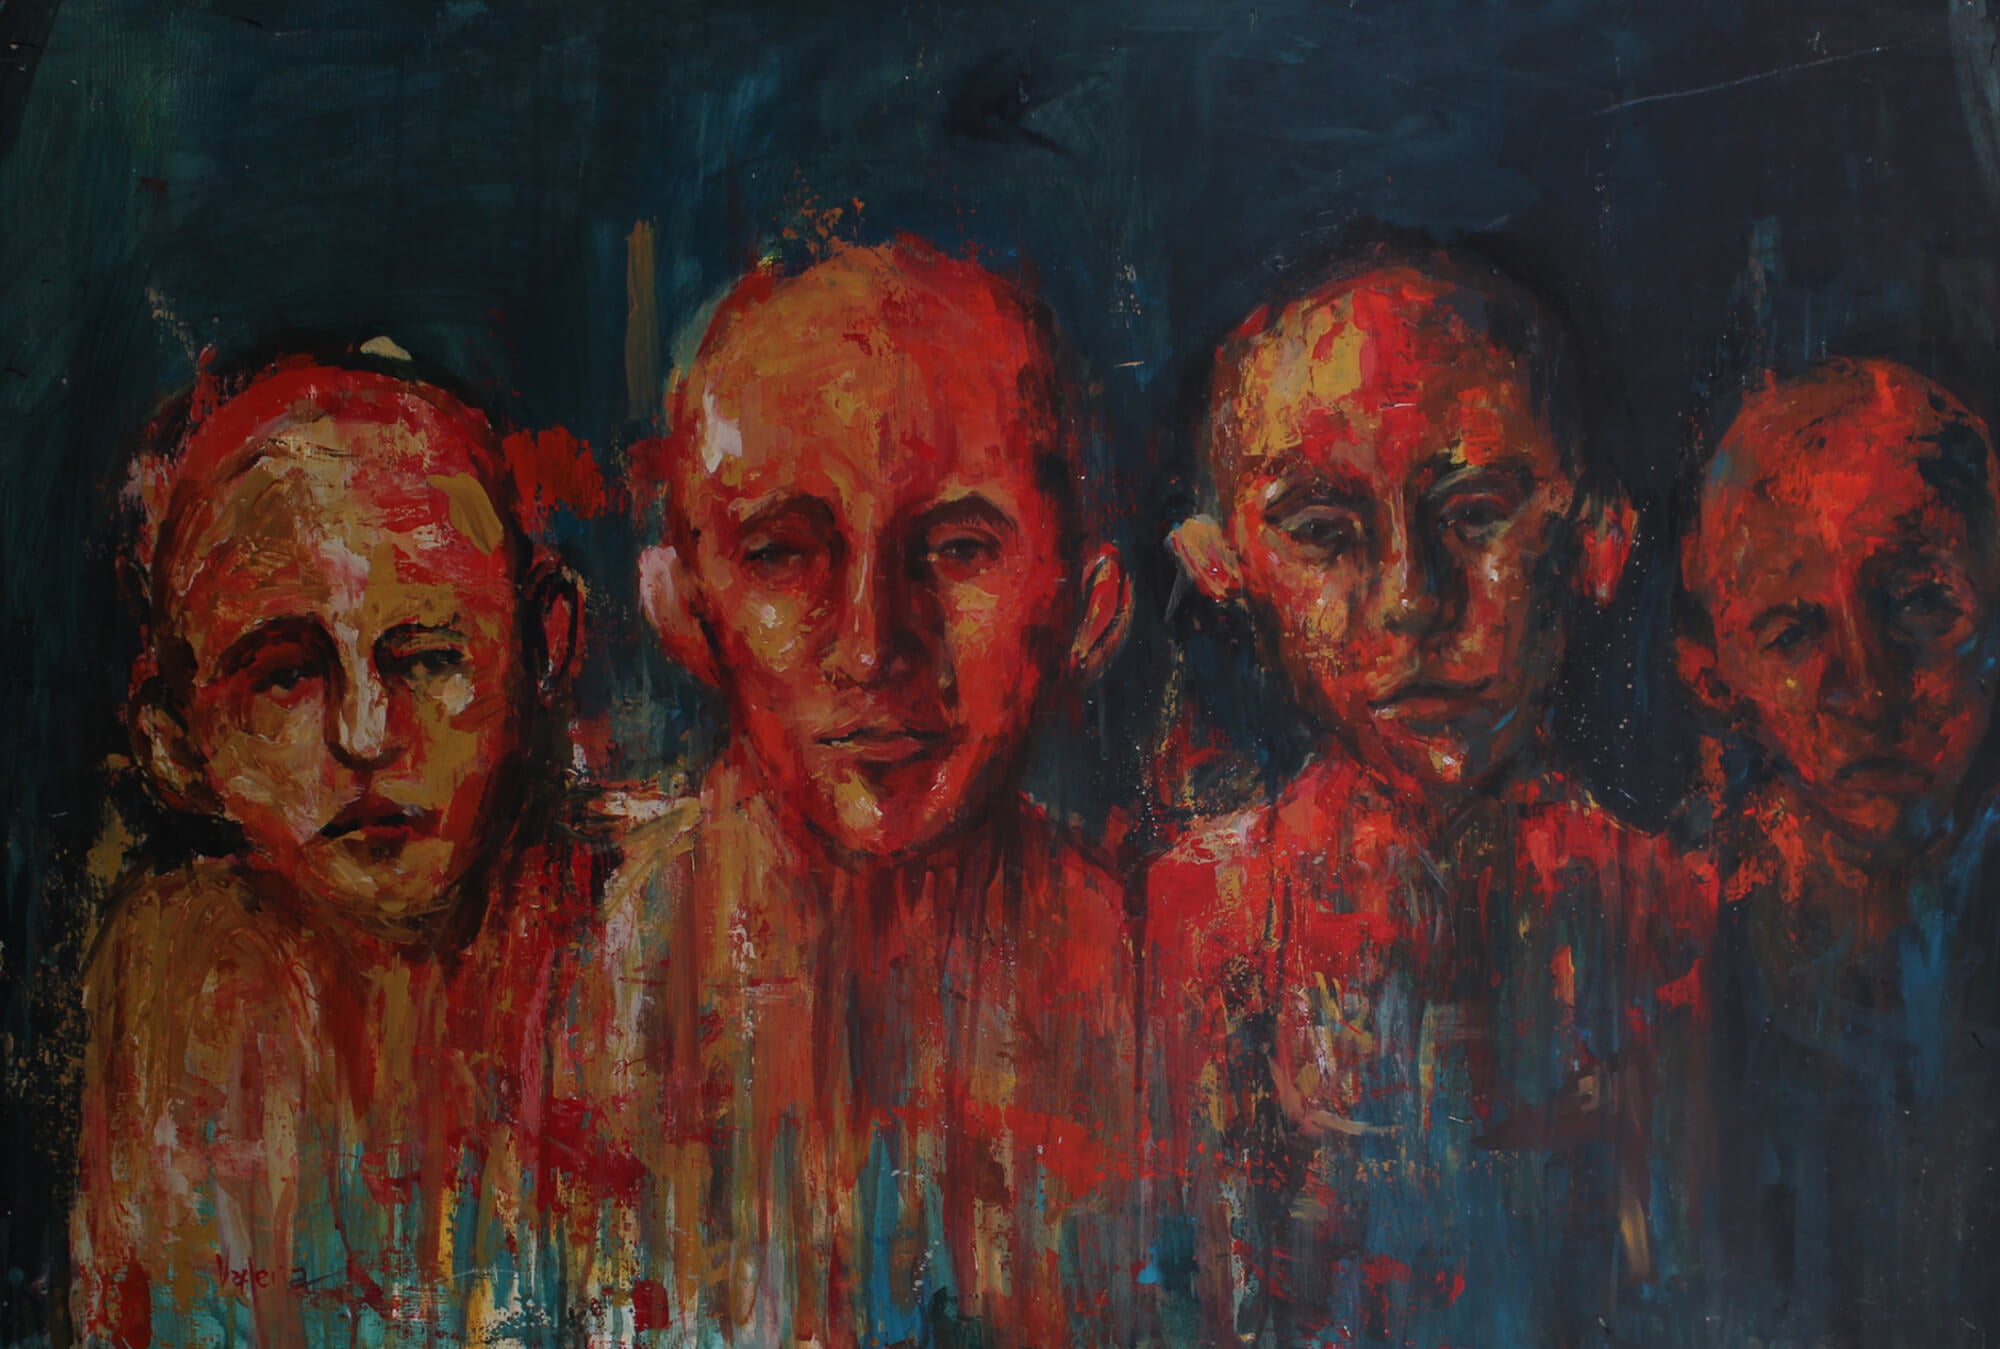 Surreal acrylic painting of four male high on drugs on a dark place by Valeria Mercado